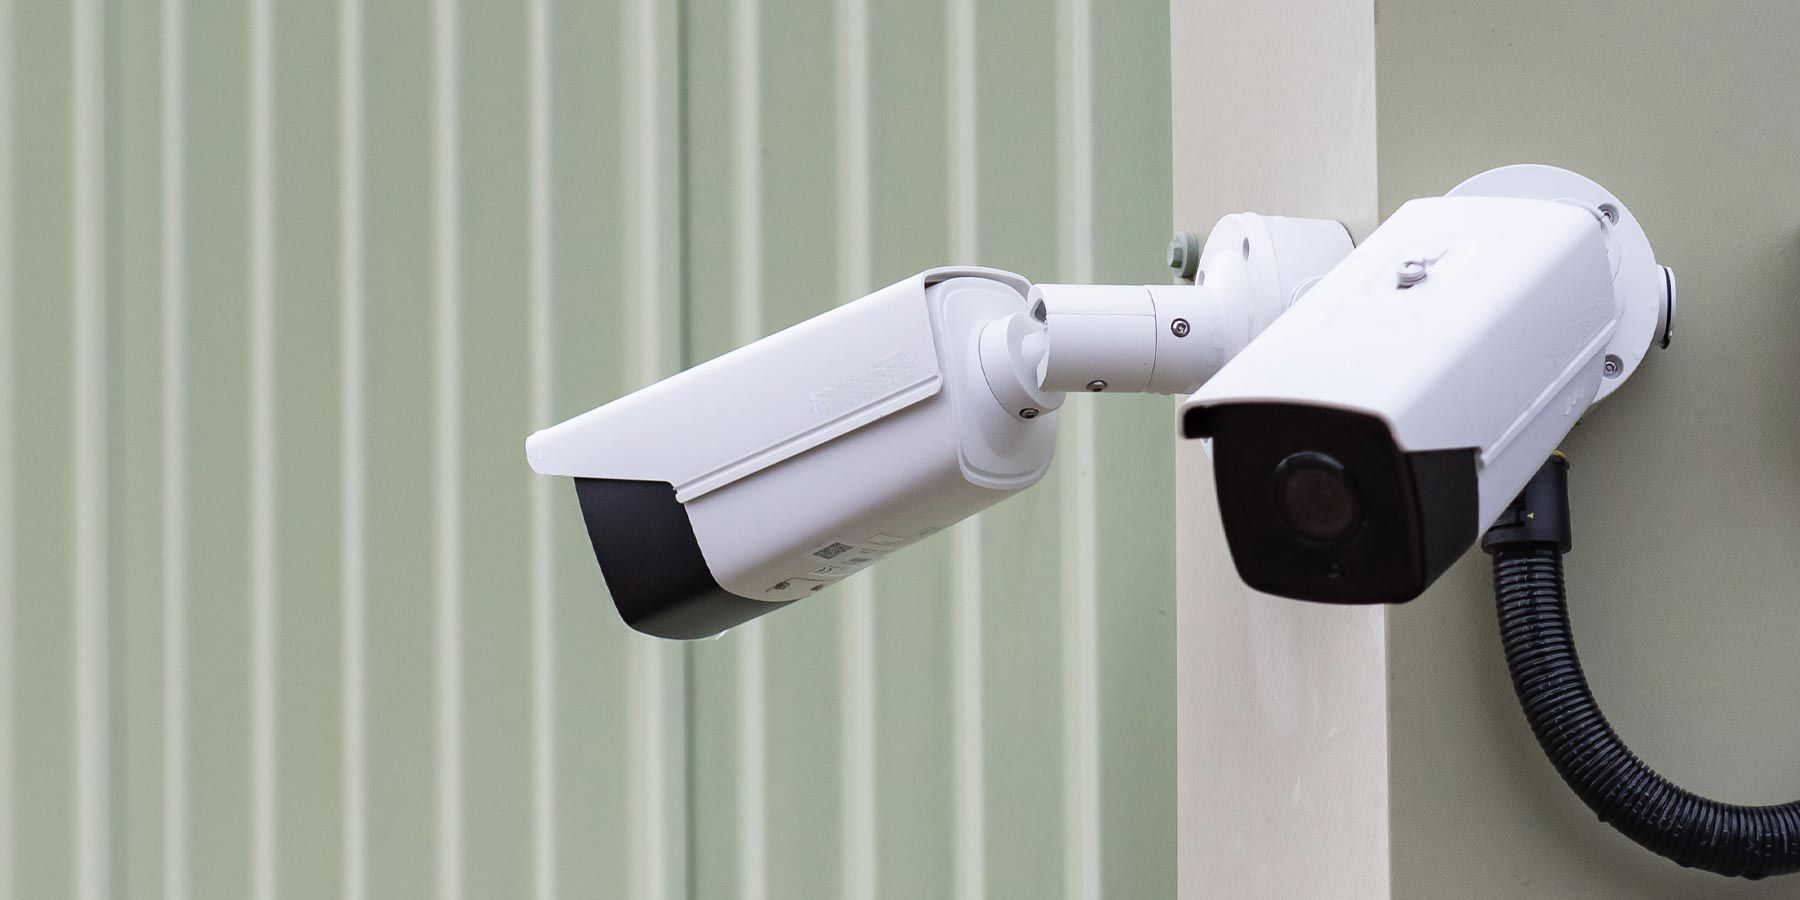 Cctv Installers Near Me In 2021 Security Camera Installation Cctv Security Systems Cctv Camera